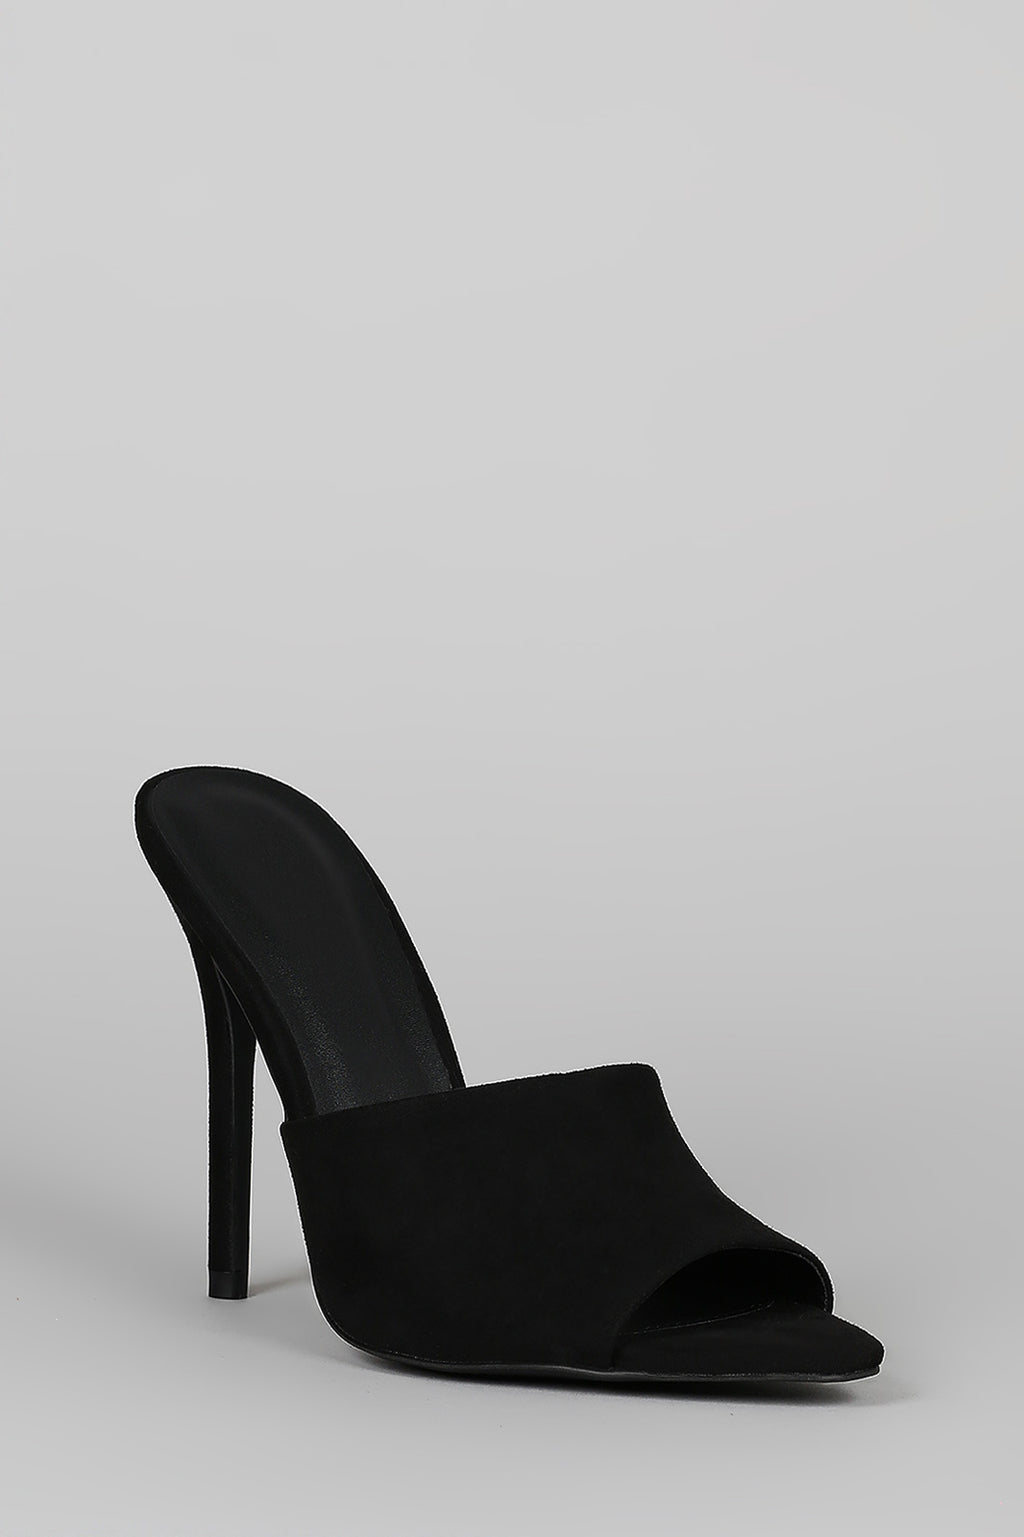 Tease Me - Black Stiletto Mule Heels